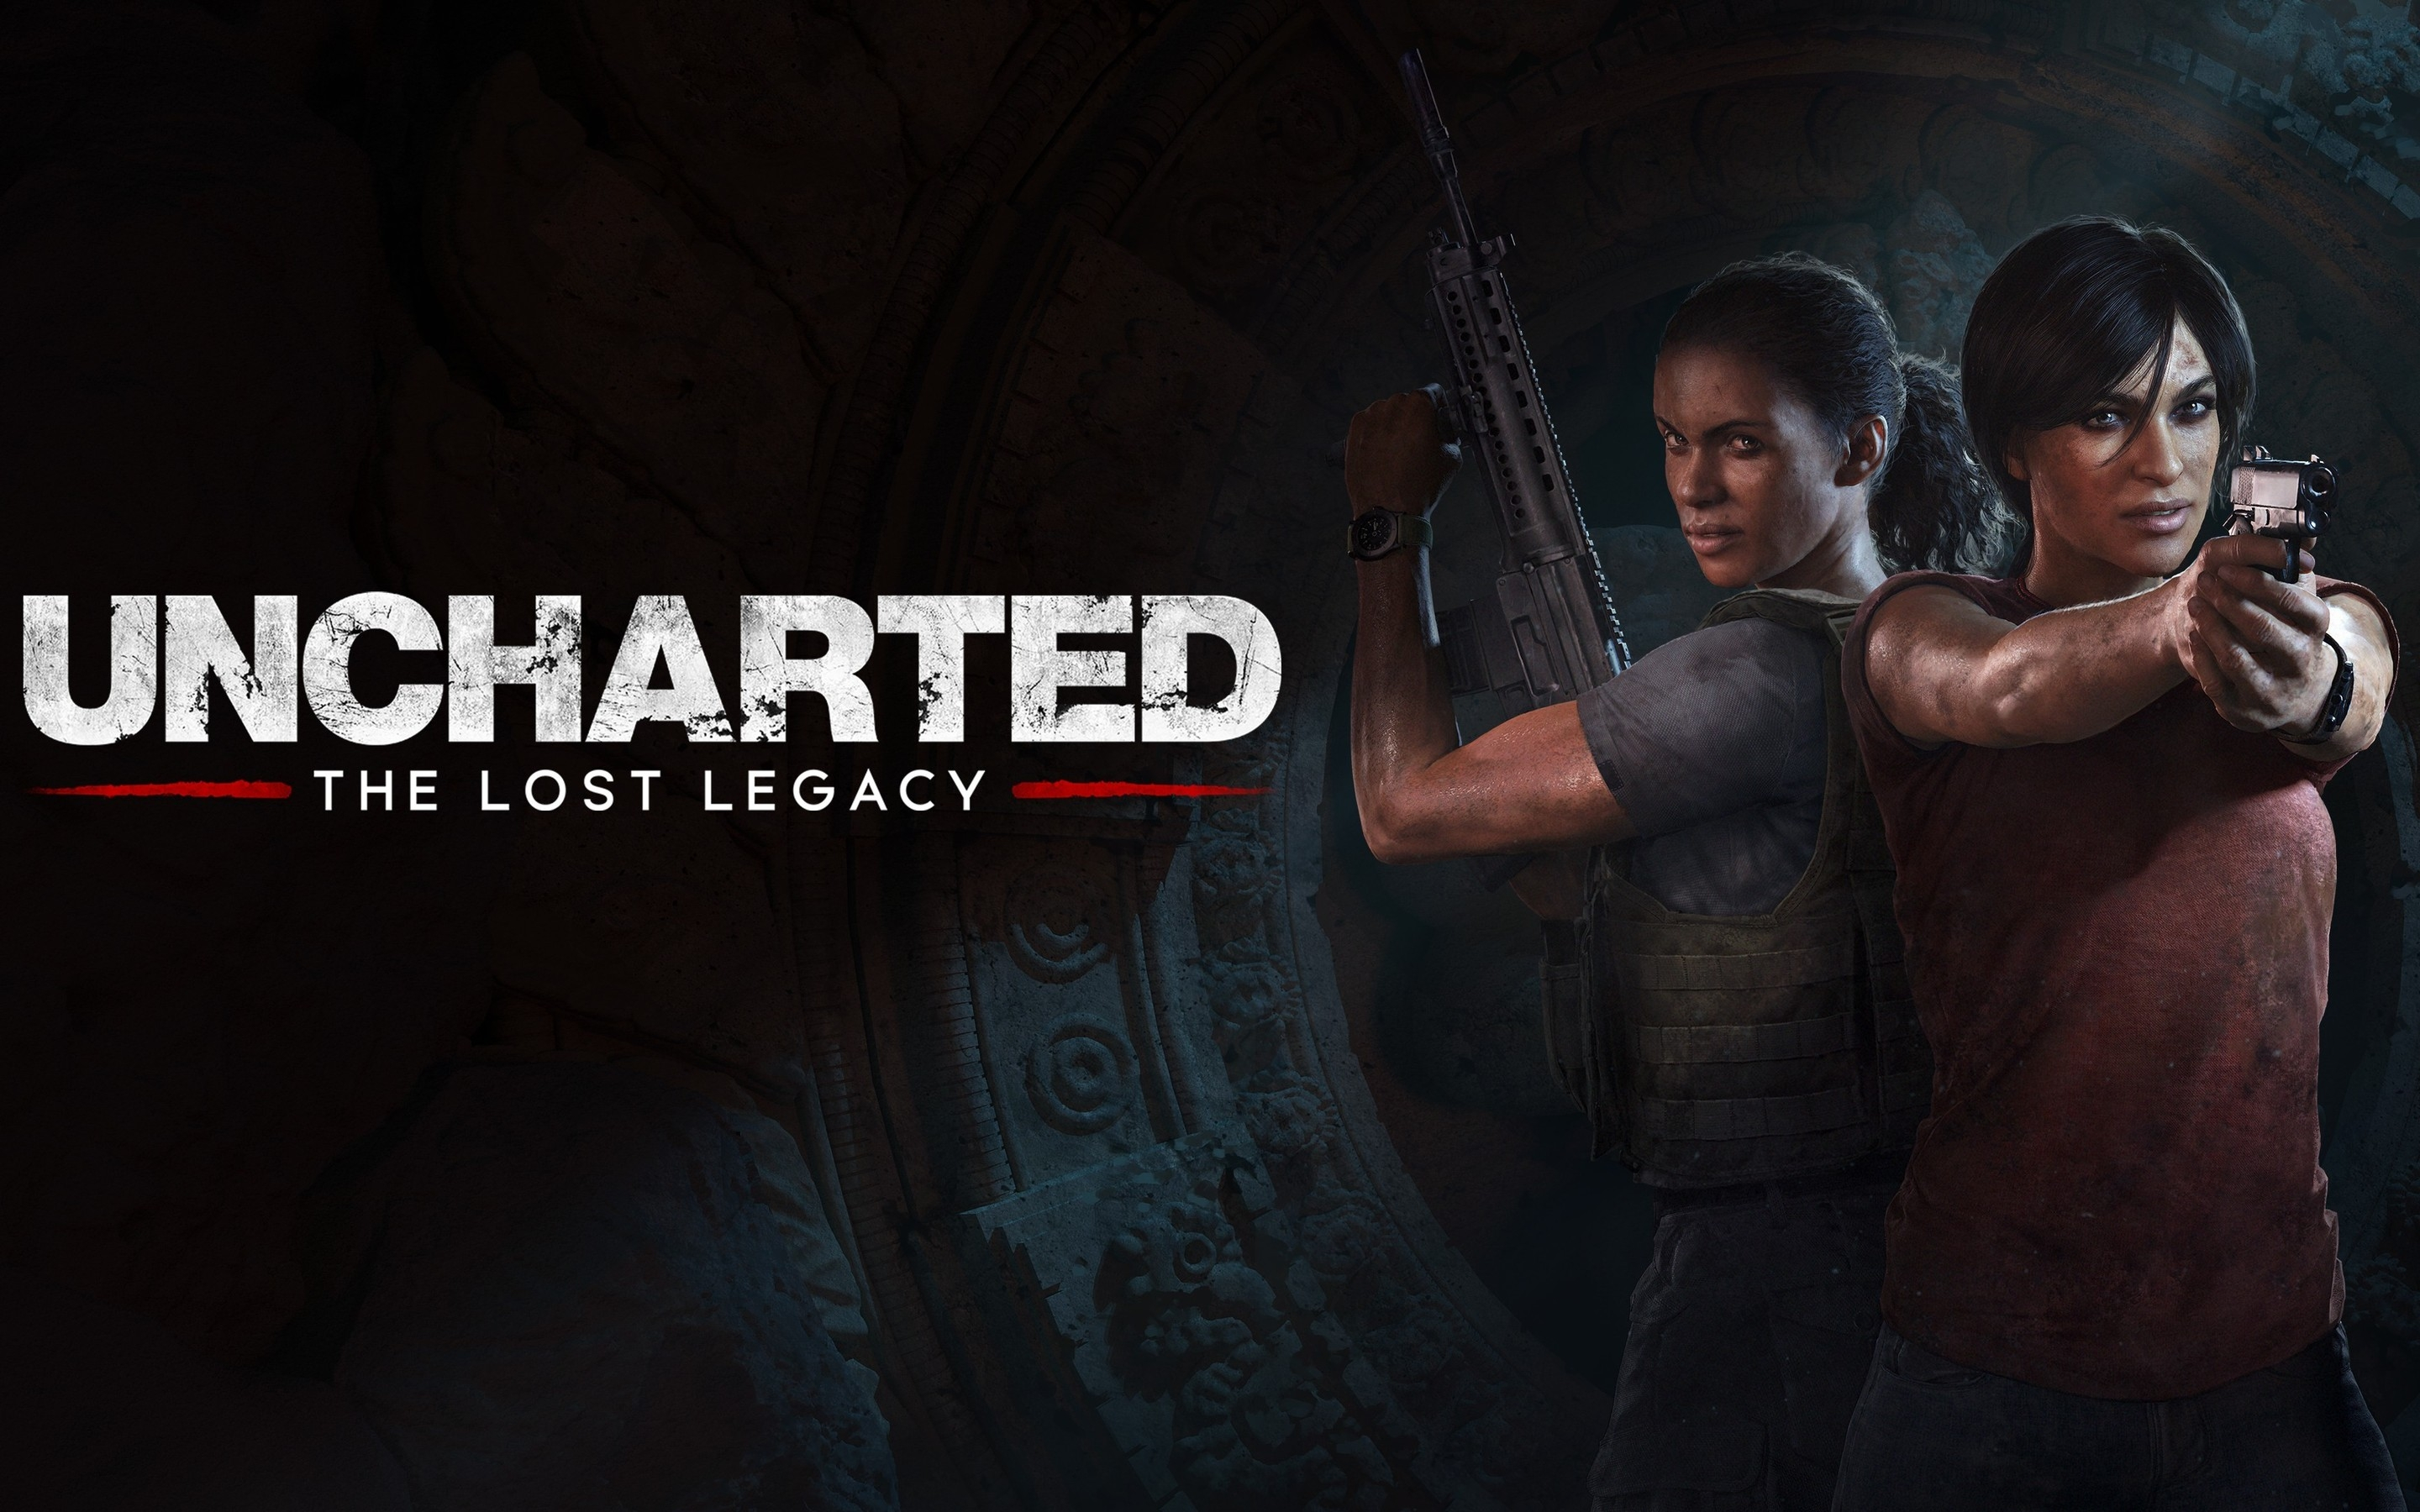 Uncharted The Lost Legacy for 2880 x 1800 Retina Display resolution